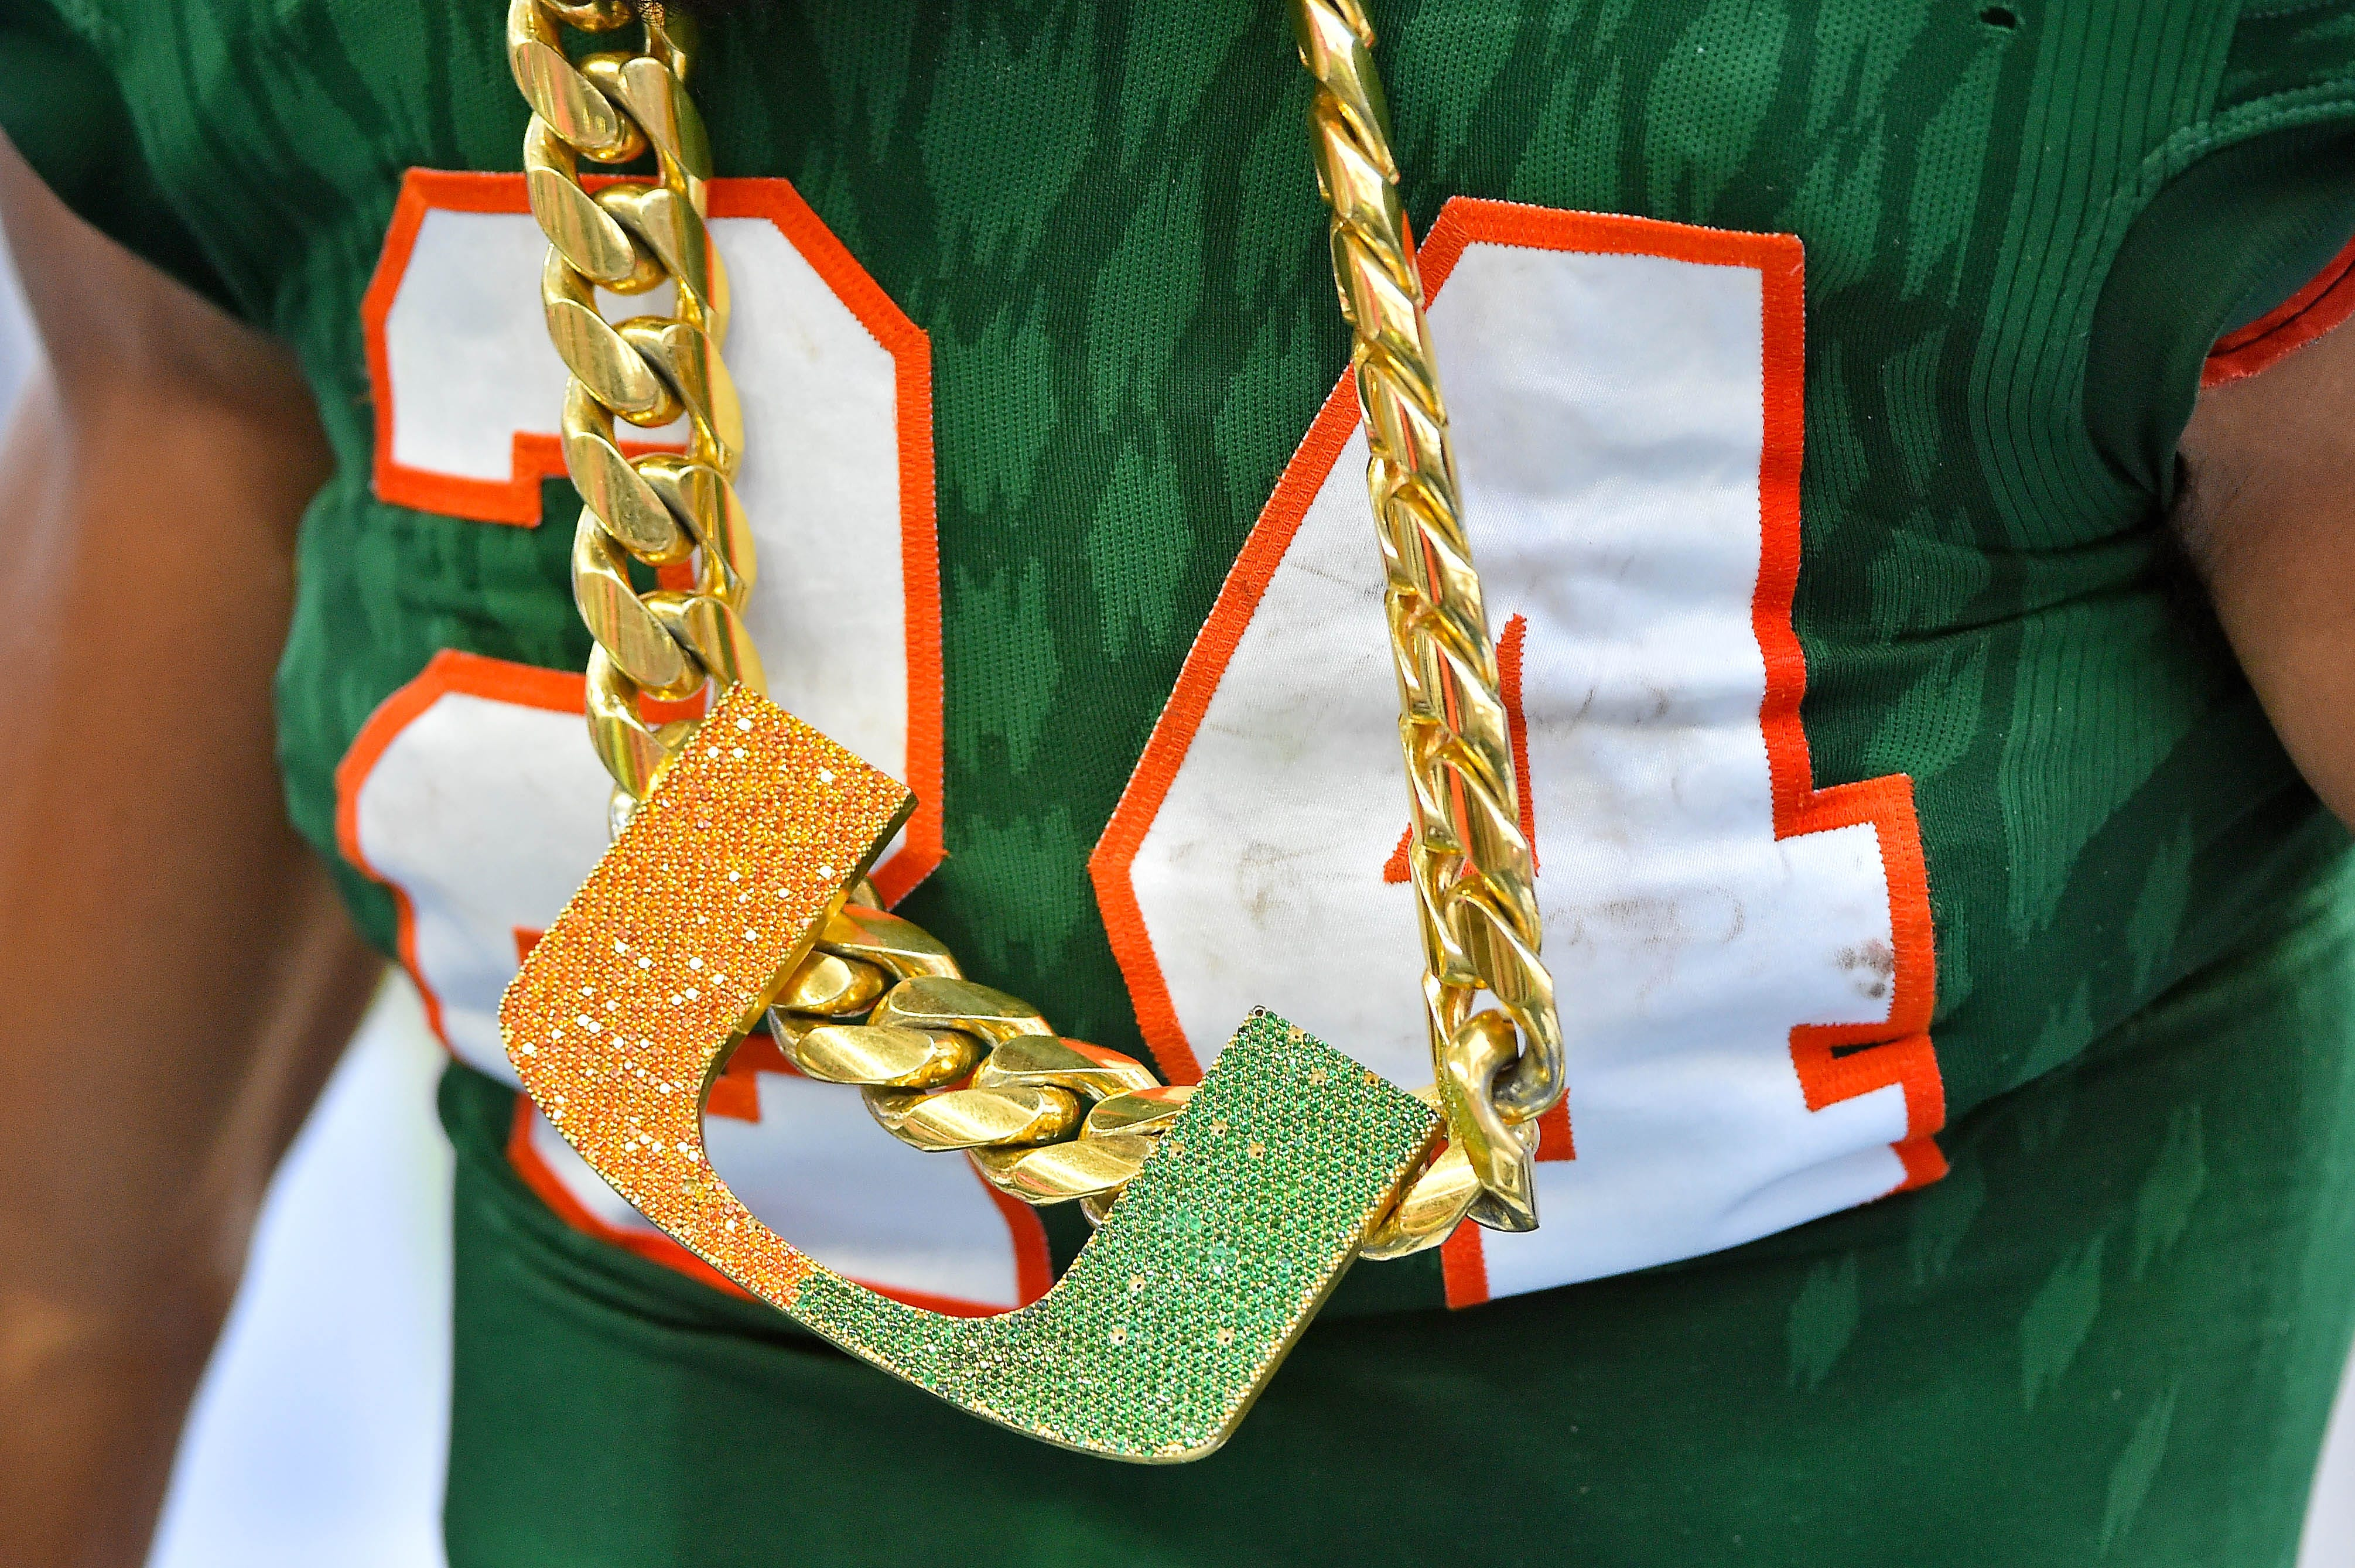 Miami turnover chain for 2018 makes debut